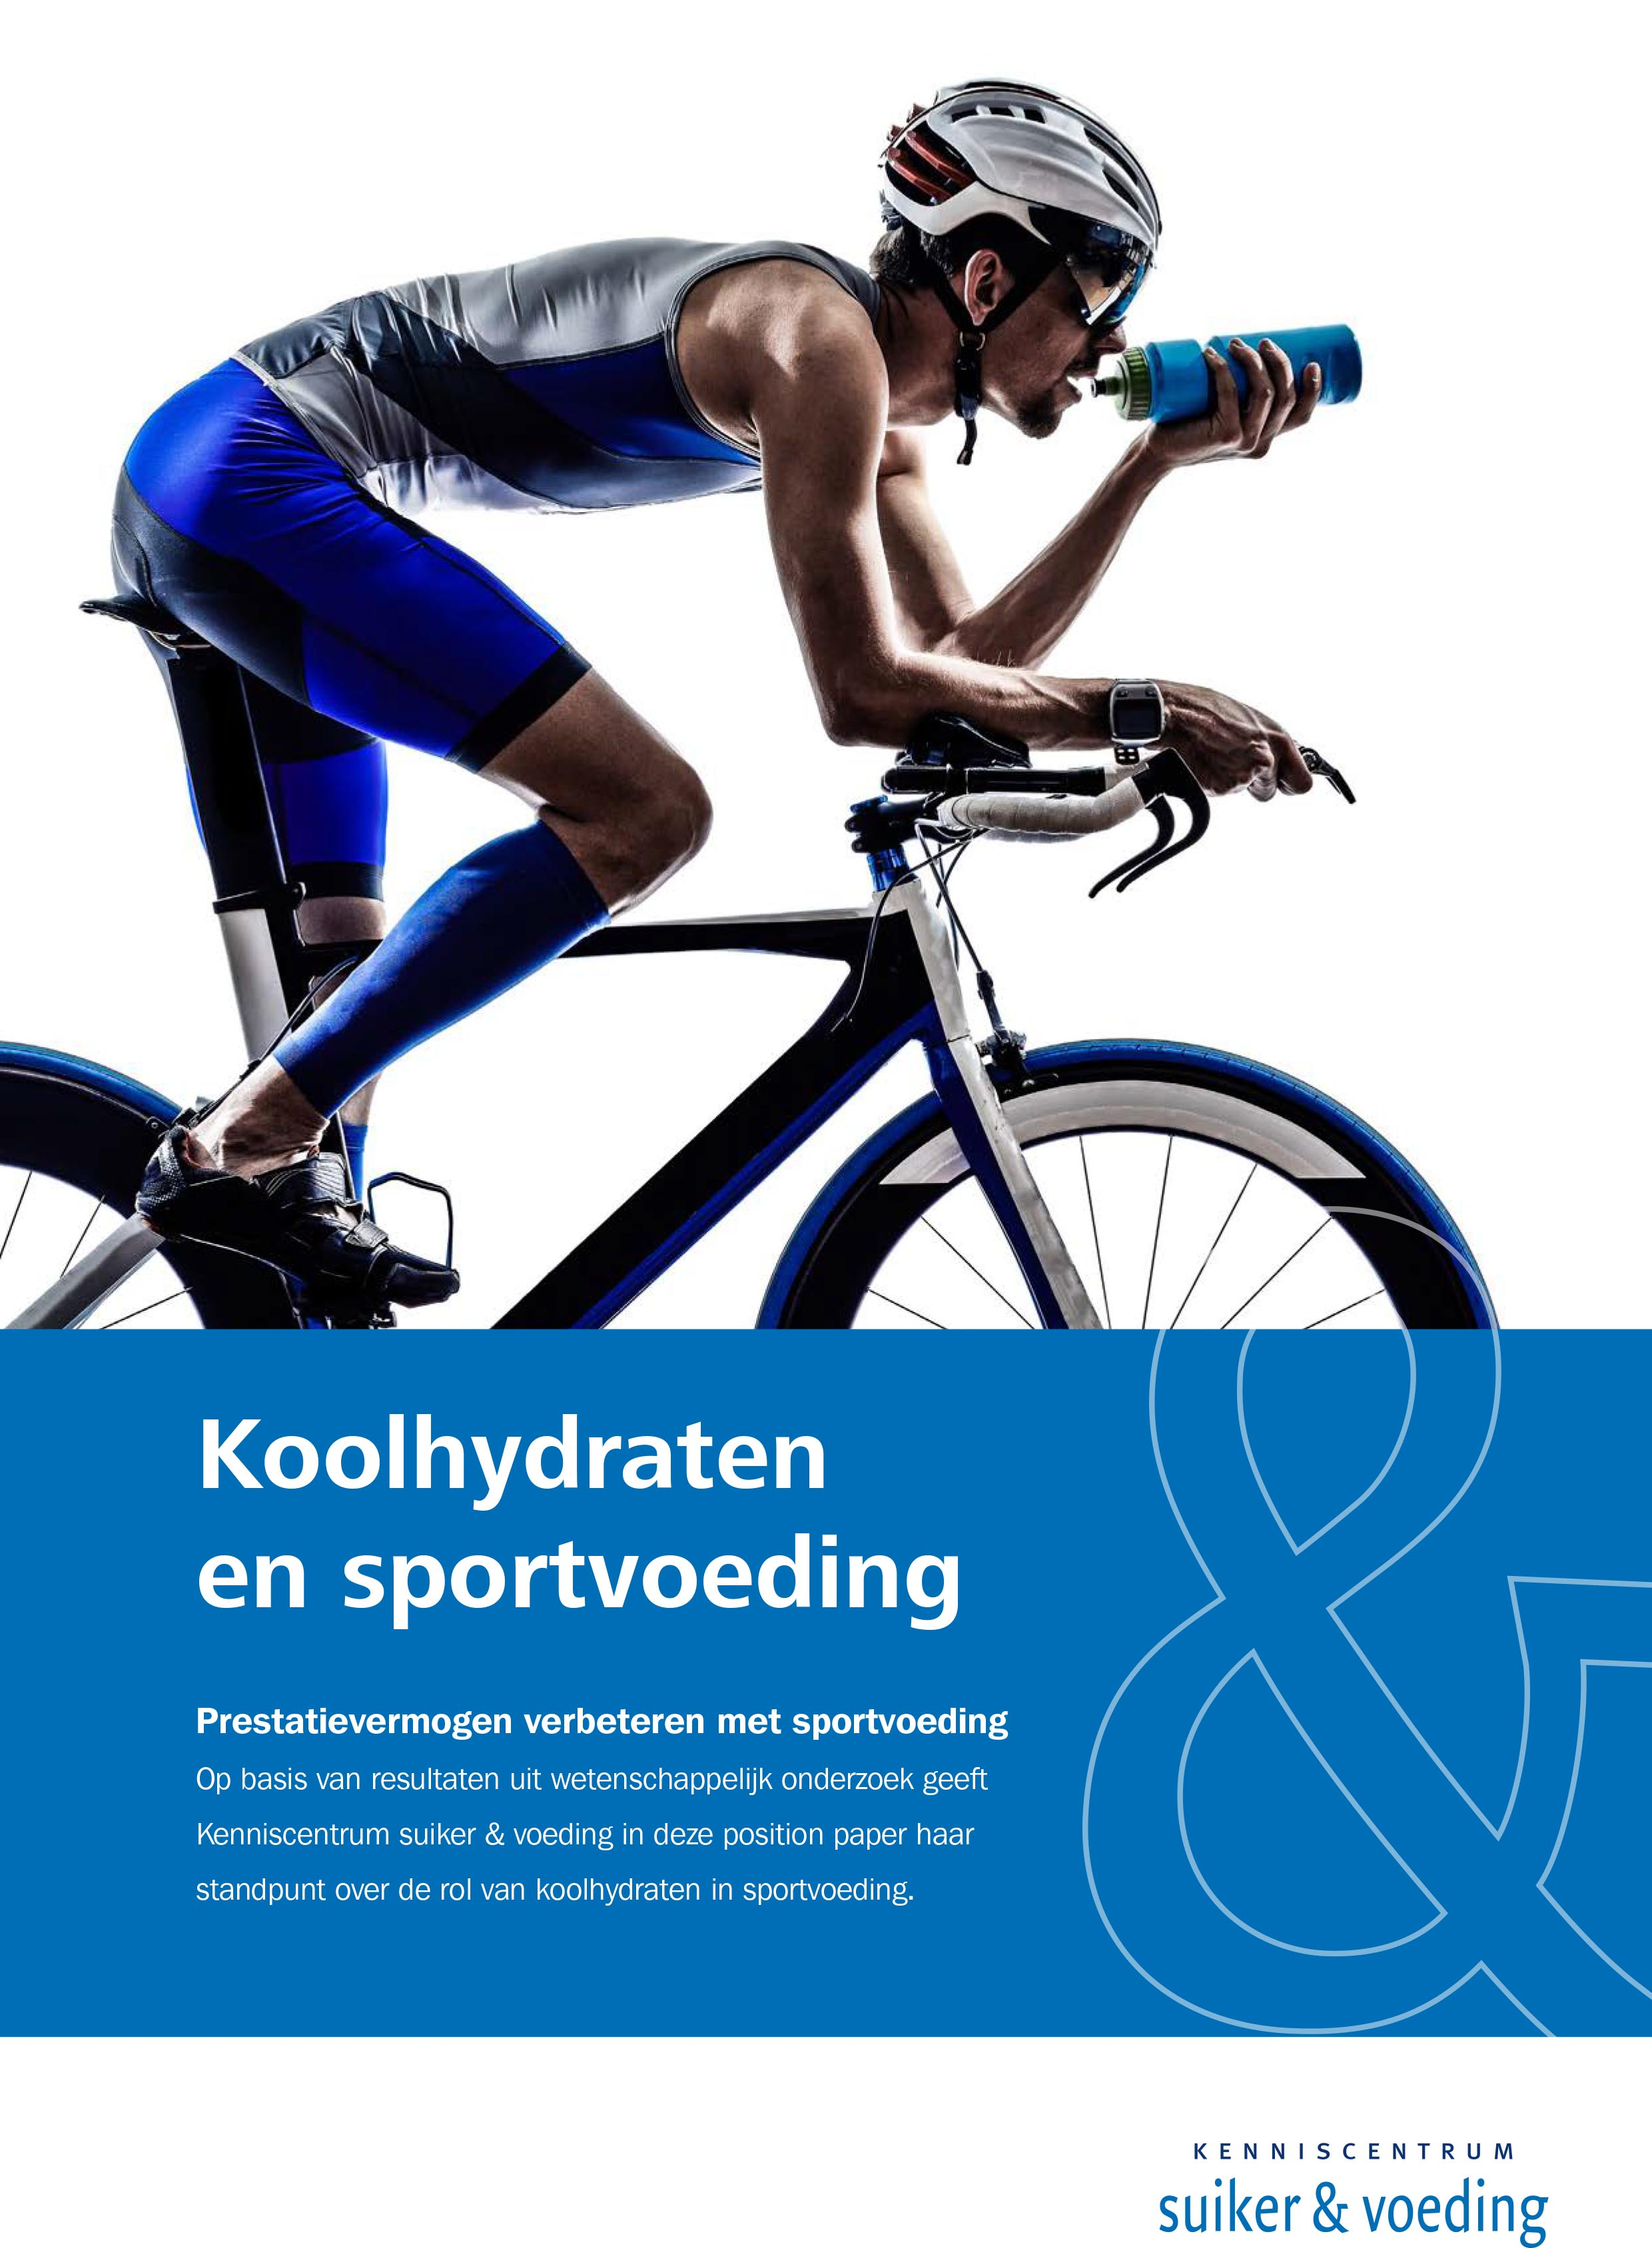 FINAL Brochure Koolhydraten en sportvoeding 120220 online 1